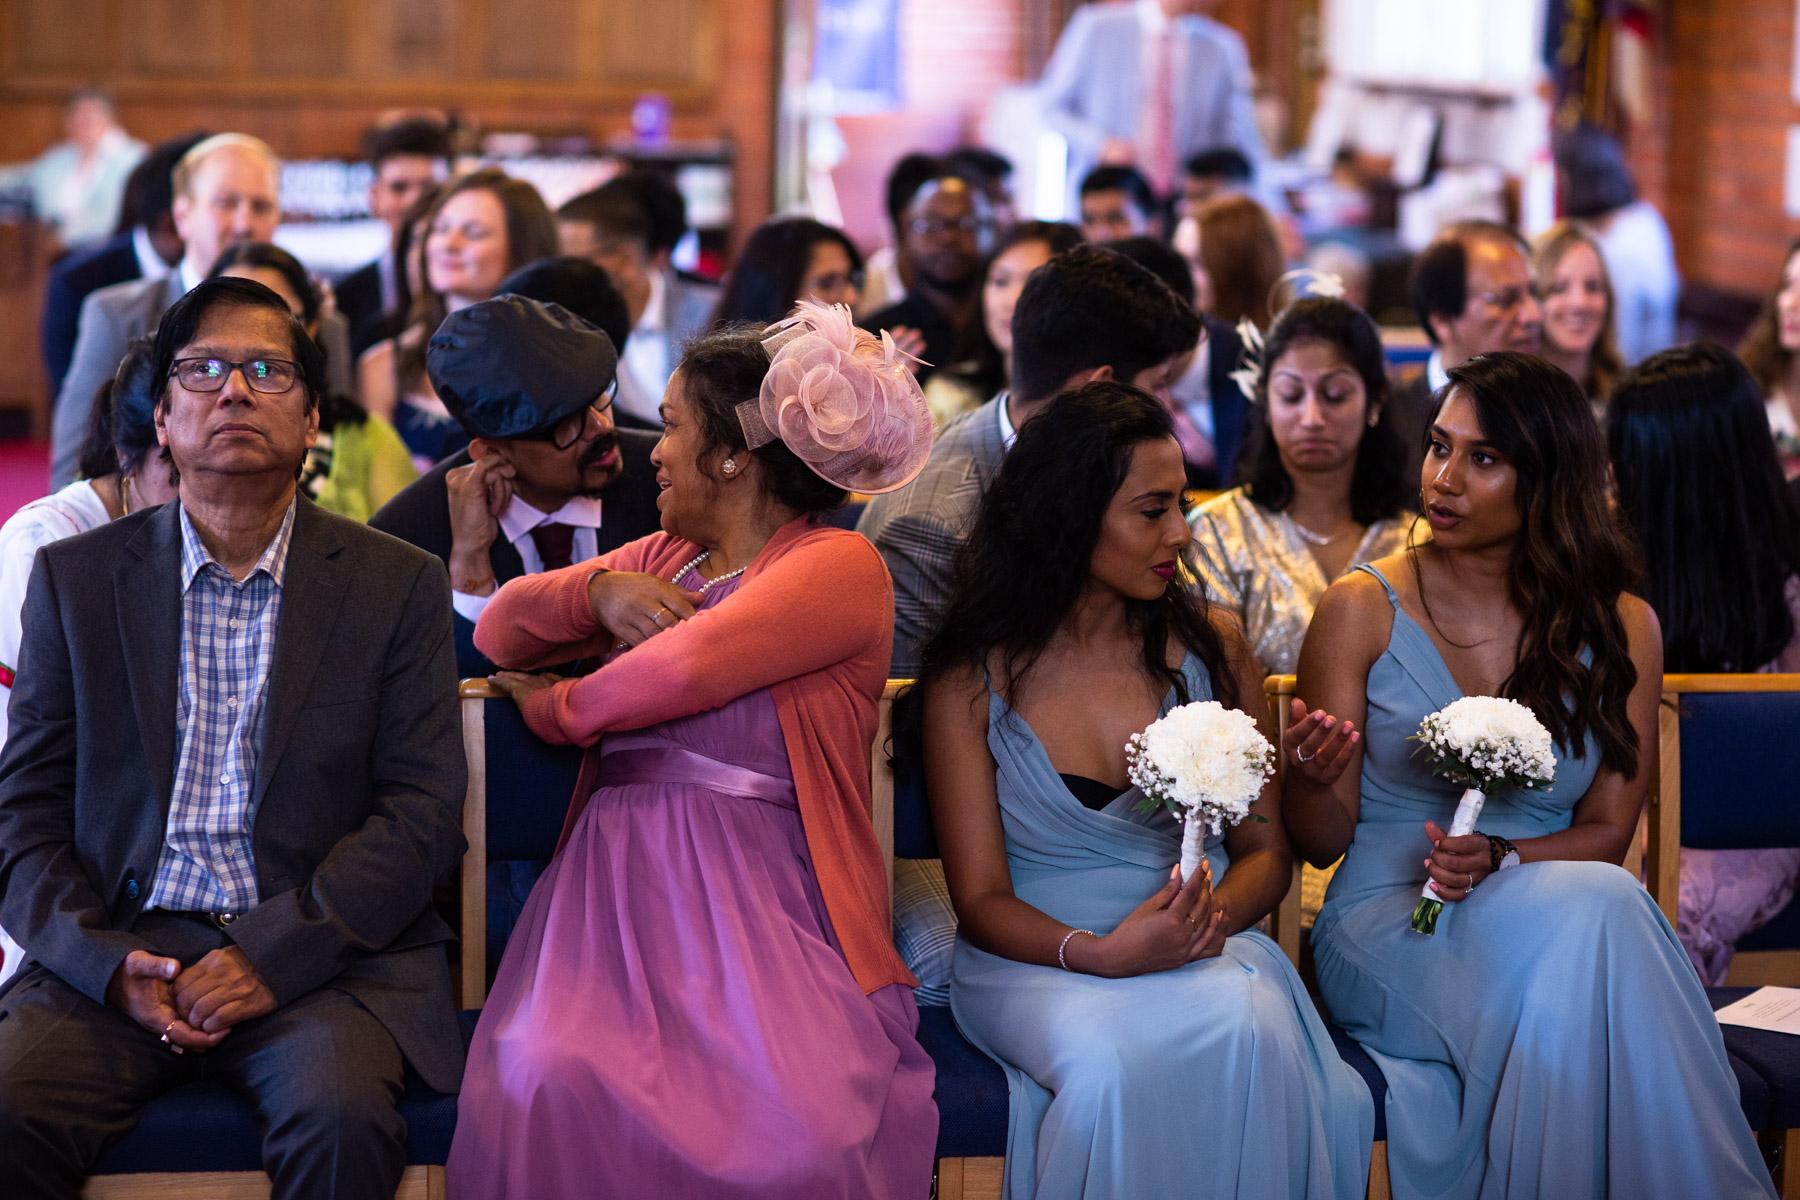 Beautiful and colourful wedding ceremony